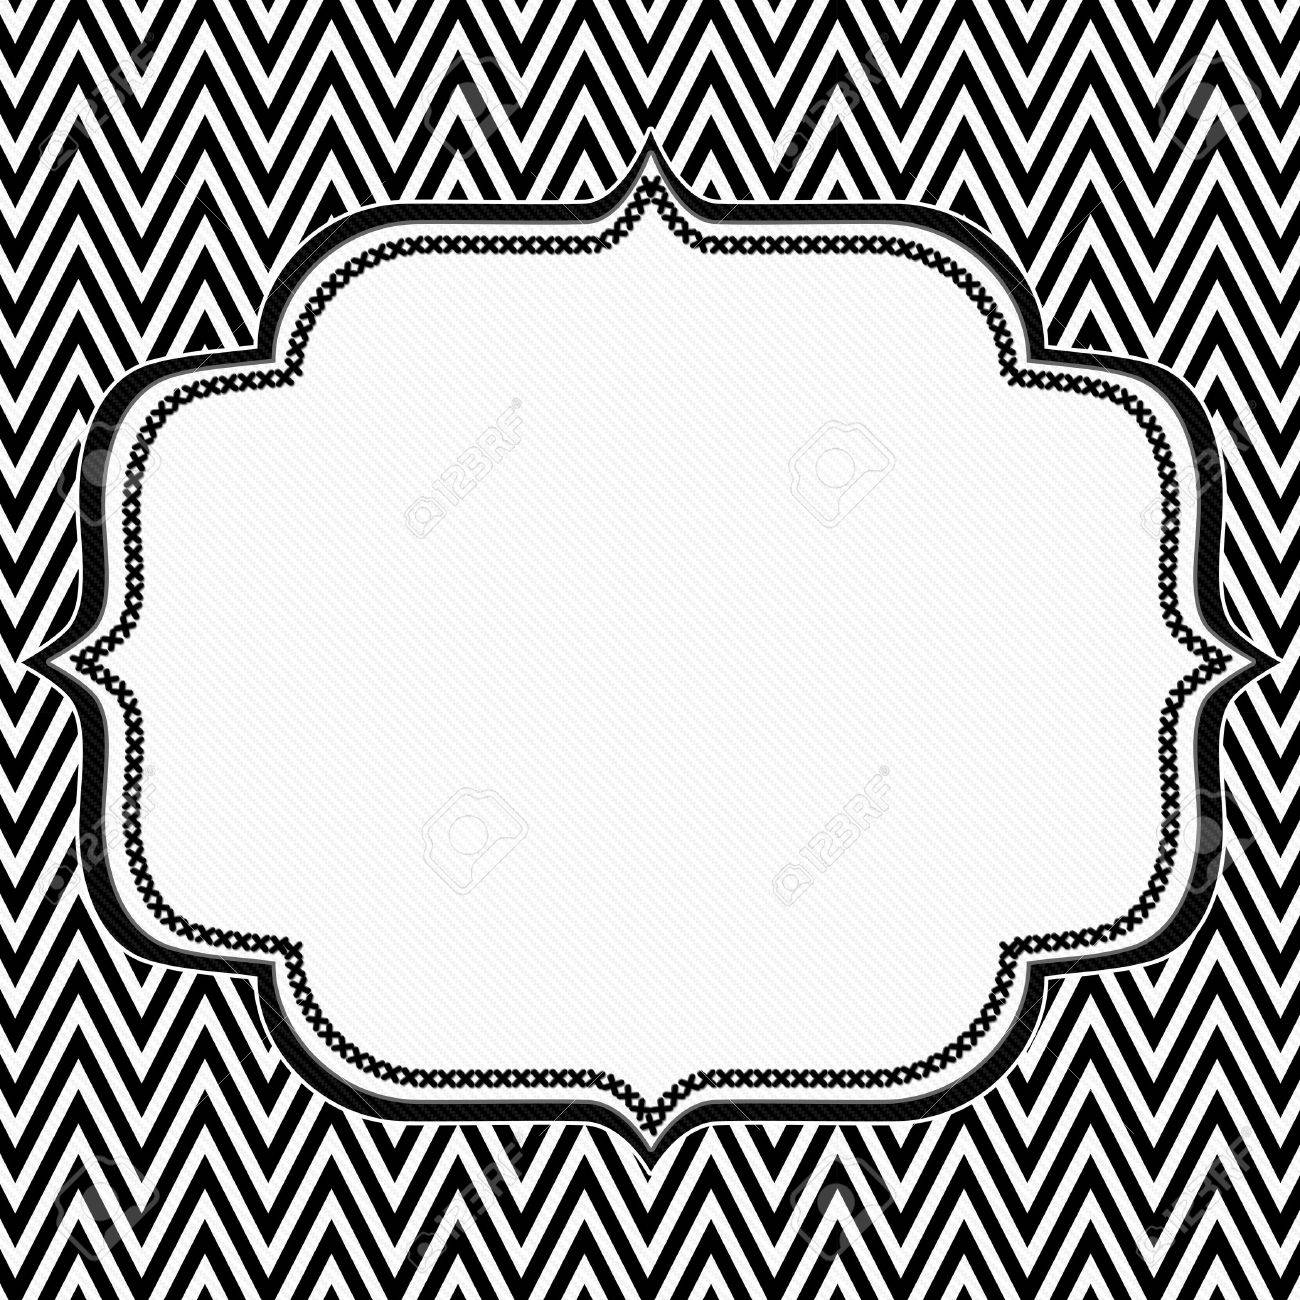 Black And White Chevron Frame With Embroidery Background With Stock Photo Picture And Royalty Free Image Image 25179237